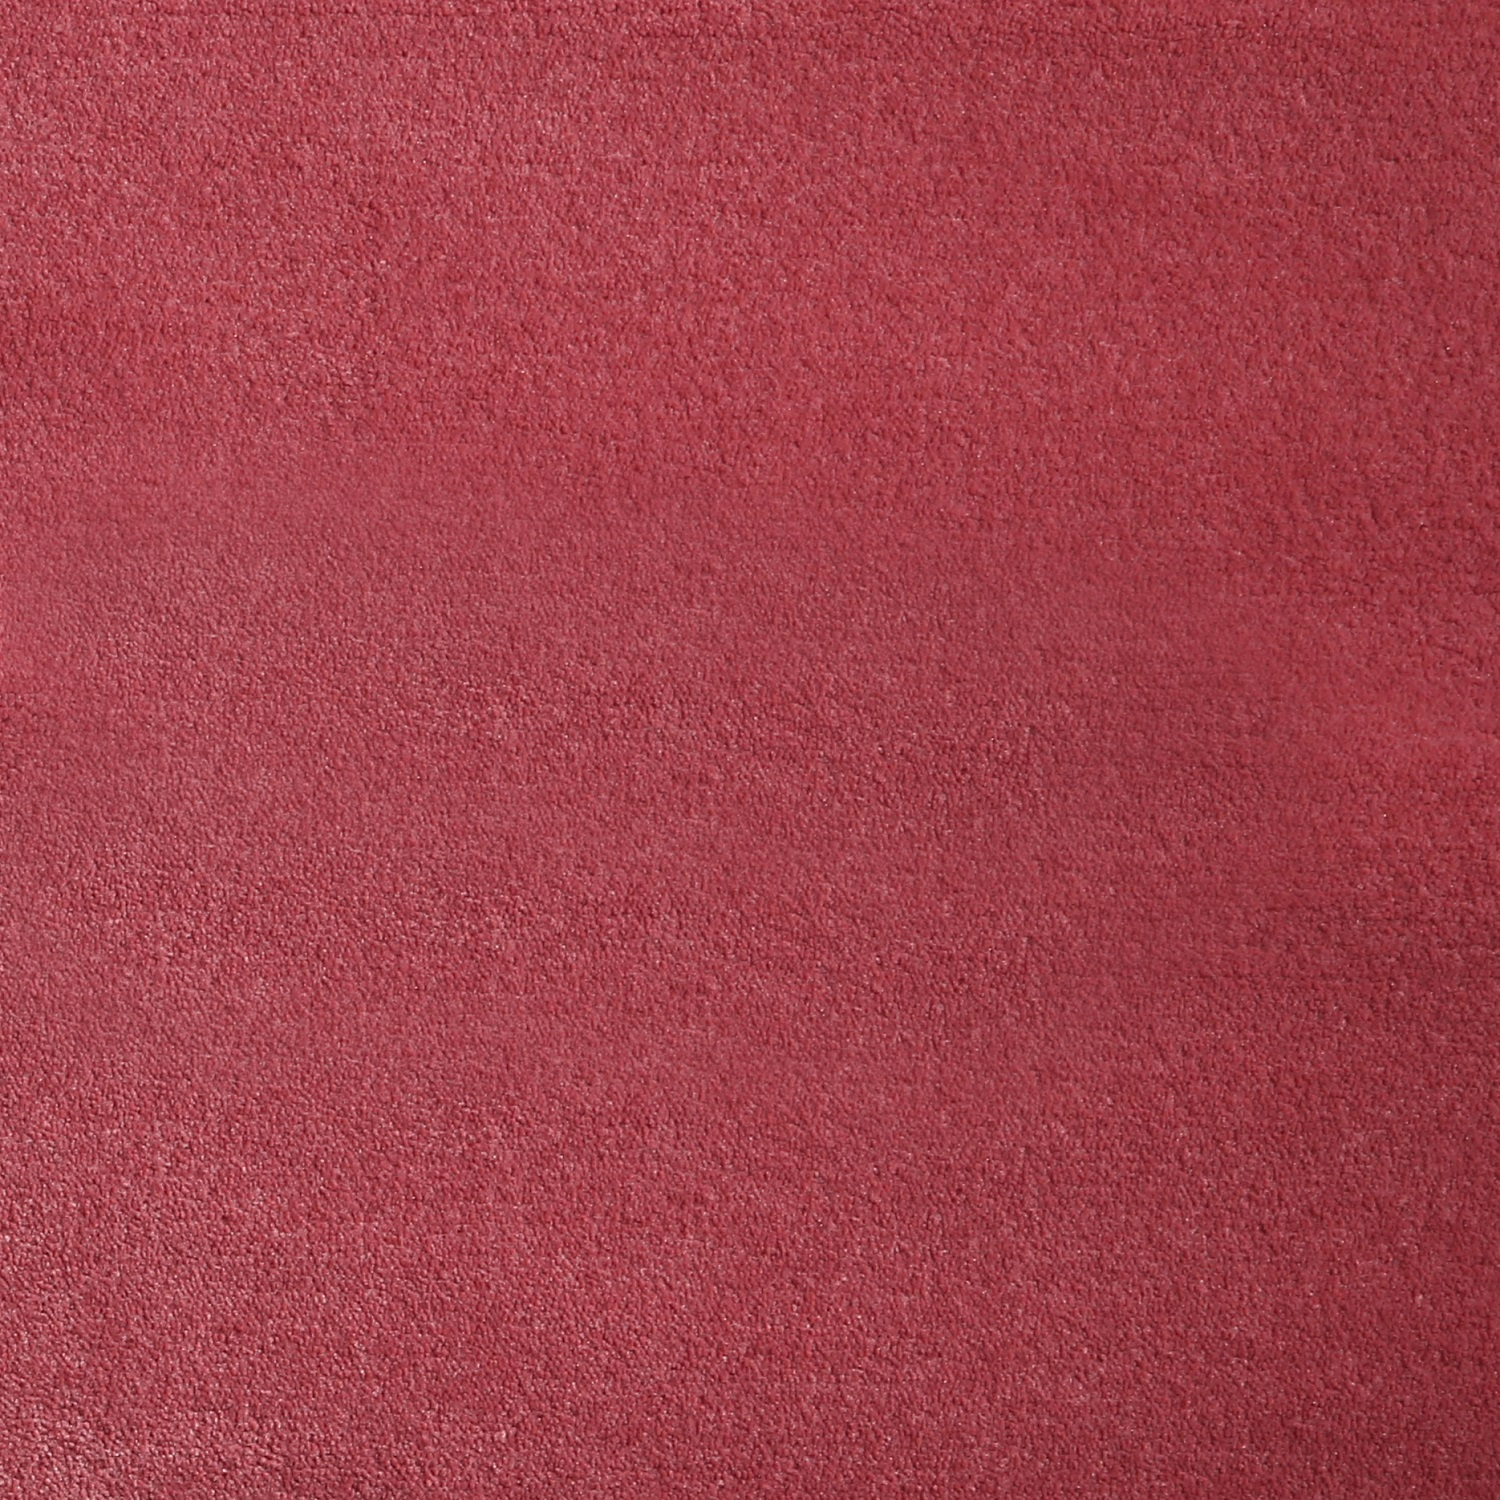 royal red carpet texture. Luxury Nylon Carpet Royal Red Texture